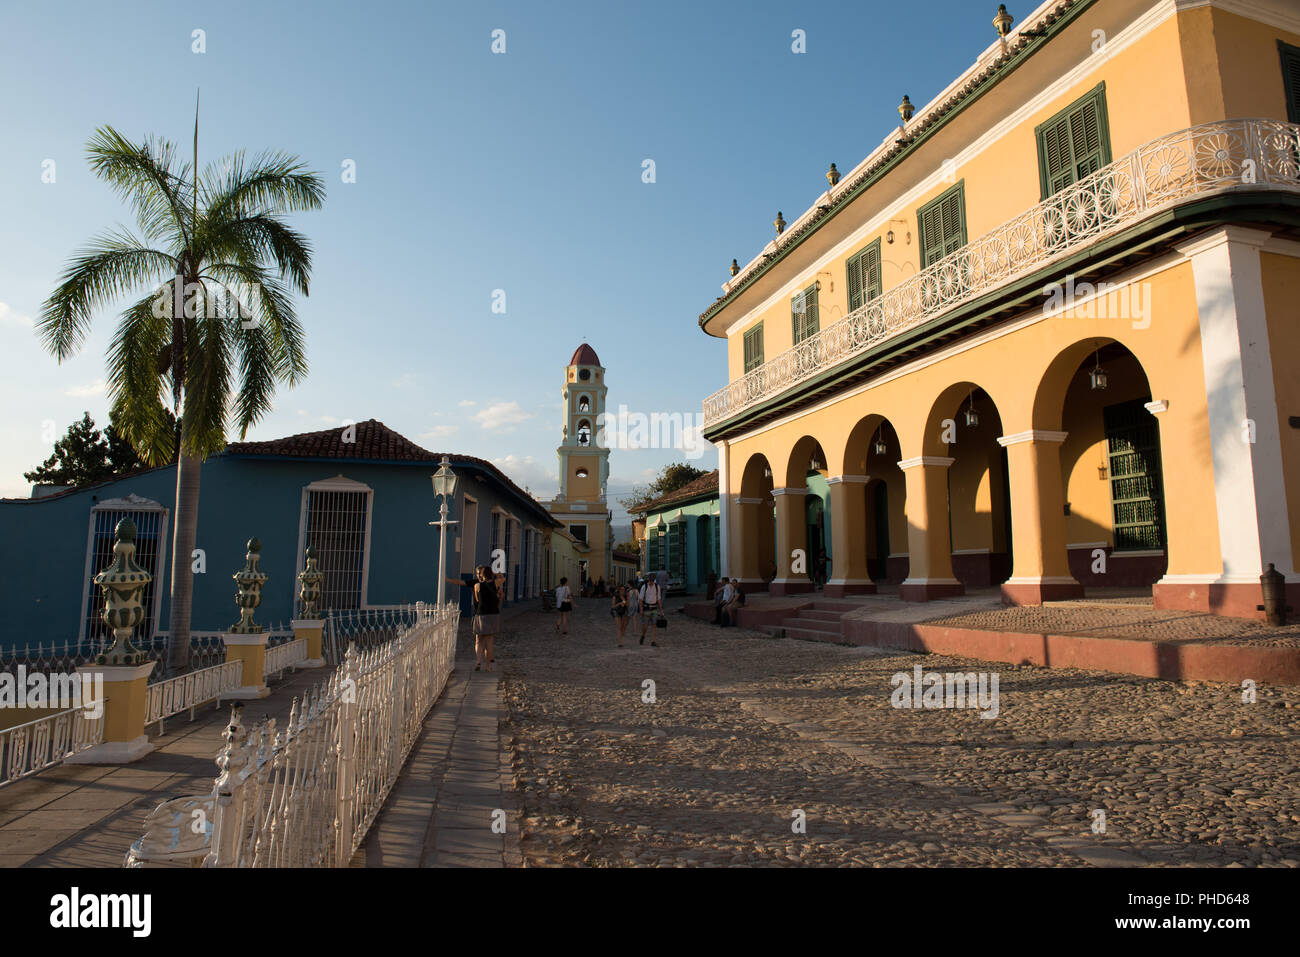 Trinidad, Cuba / March 15, 2016: Historic home of the wealthy Borrell family, the colonial building now houses the Romantic Museum (Museo Romántico.) - Stock Image